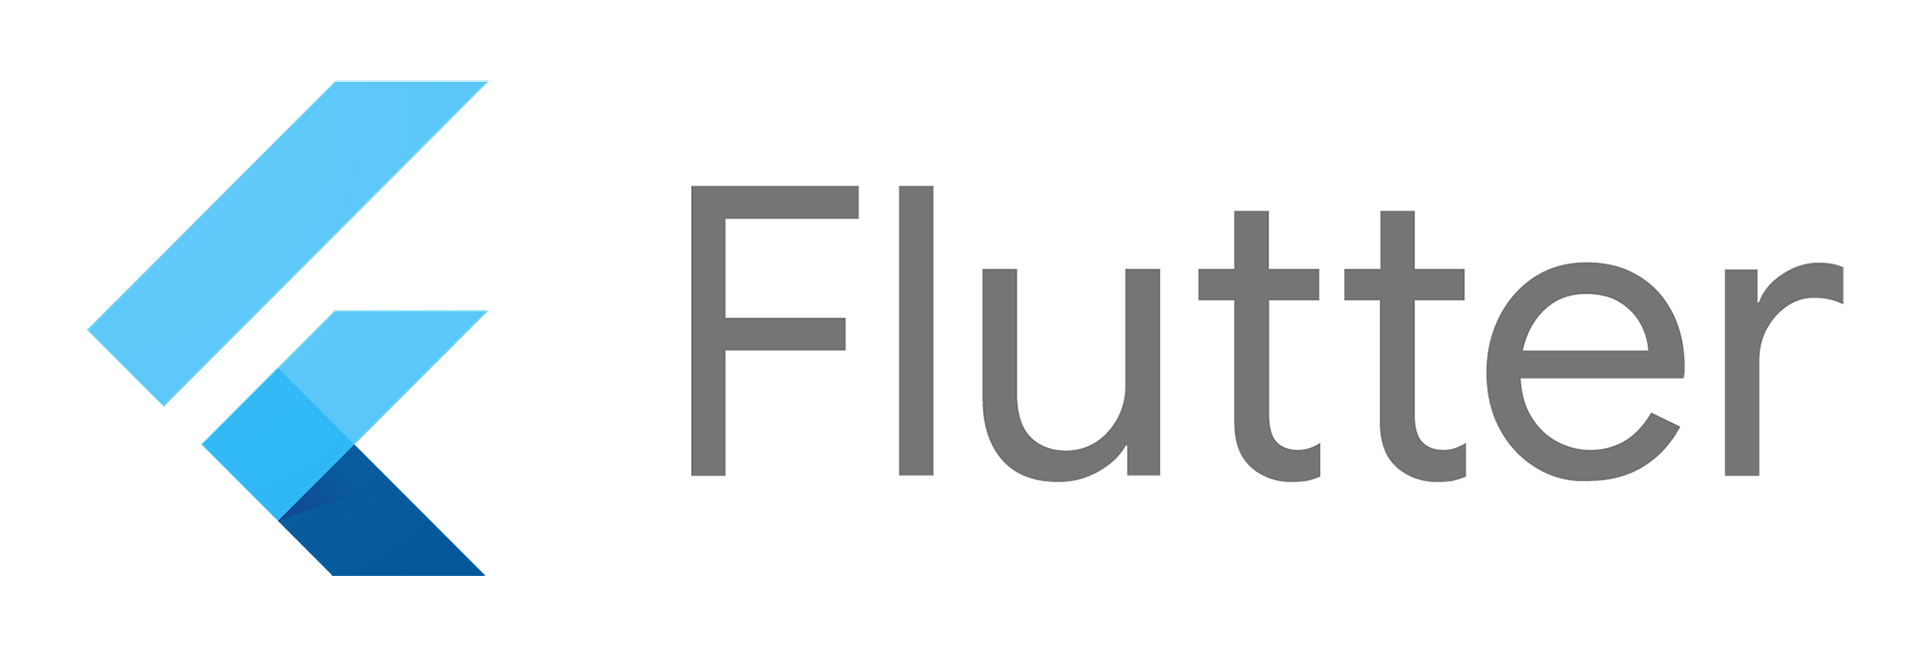 Google bridges Android and iOS development with Flutter 1 0